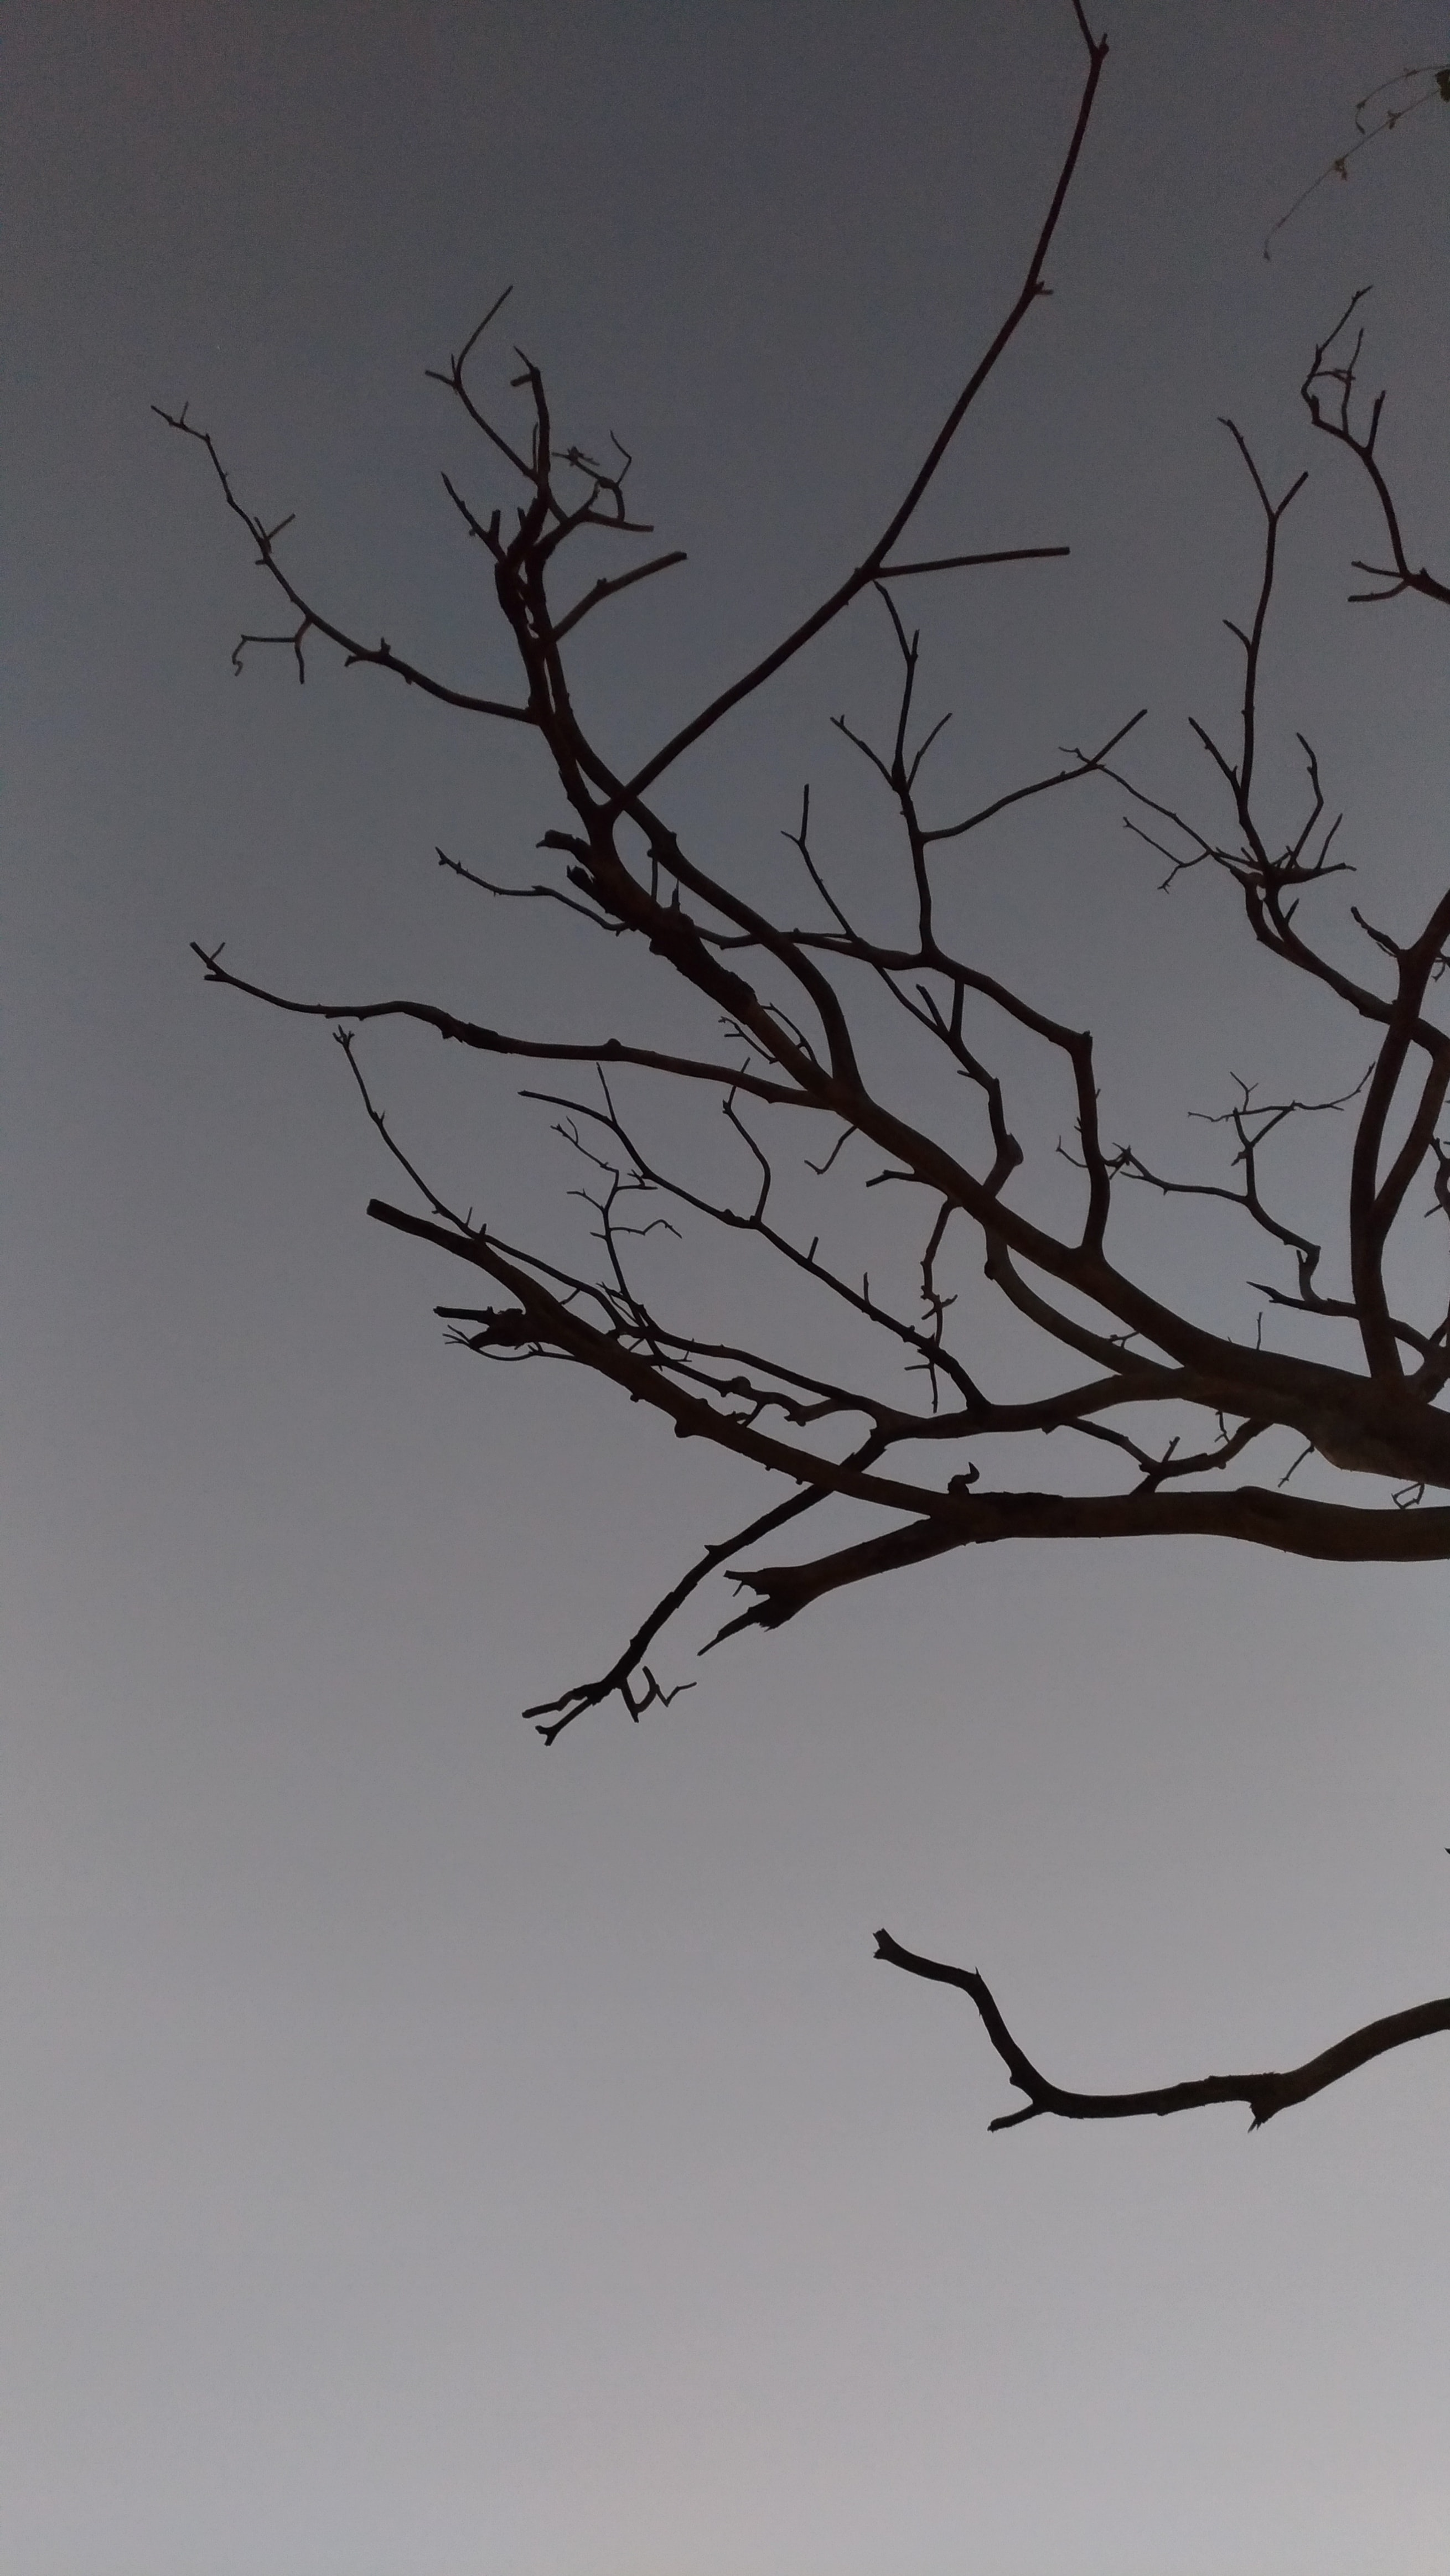 tree branch under gray sky